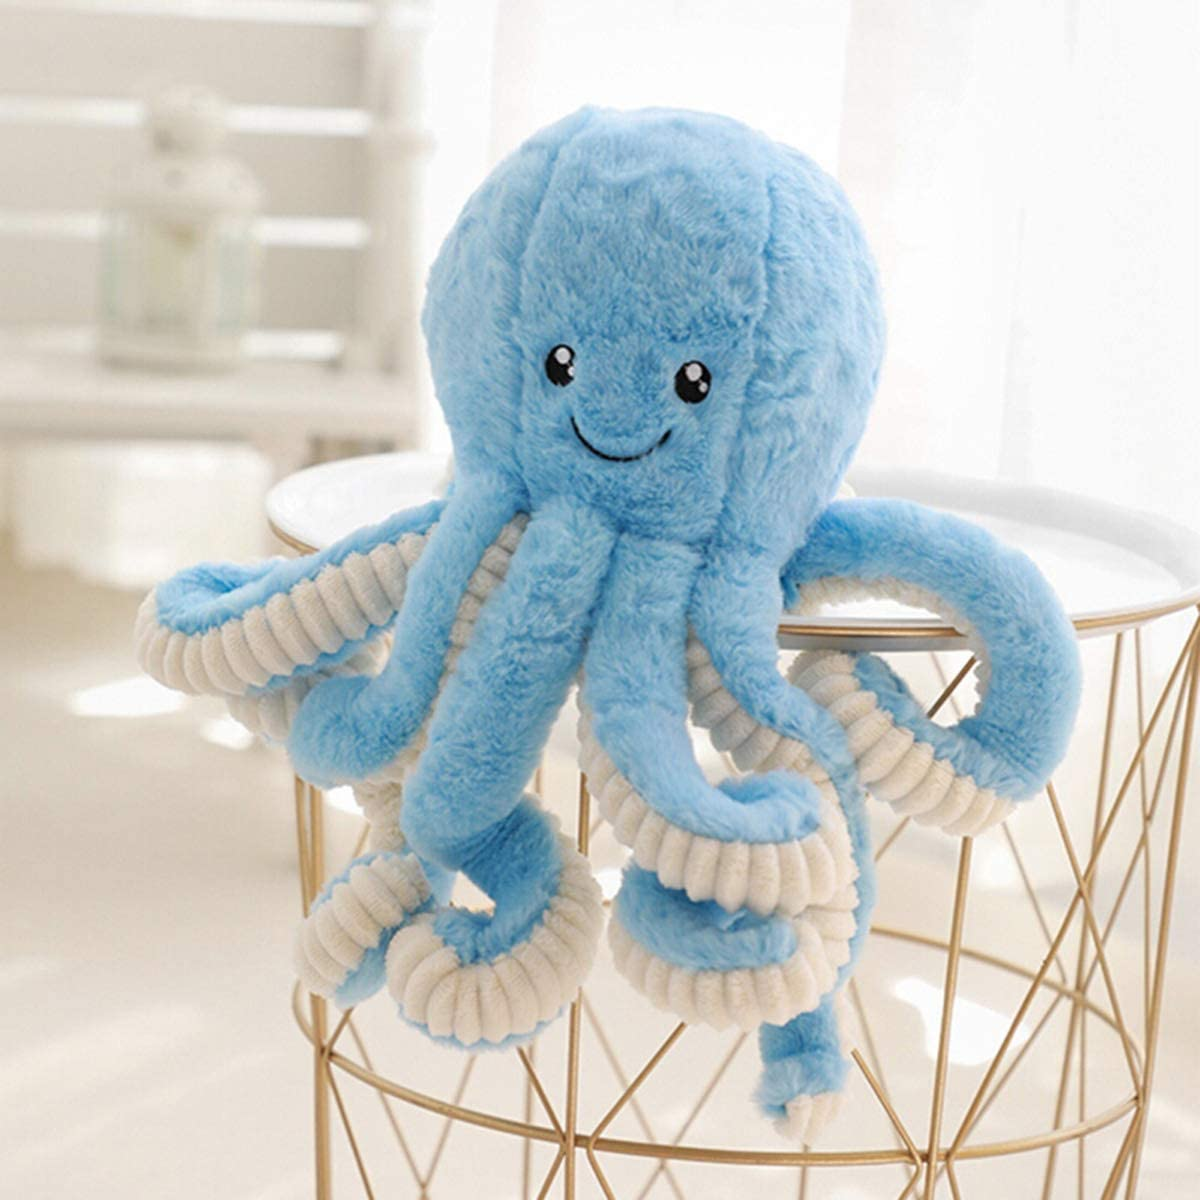 BELUPAI Octopus Plush Stuffed Toy, Cute Sea Creature Plush Toy Simulation Animals Soft Plush Pillow Gift for Kids Boys and Girls 15.7inch (Blue)